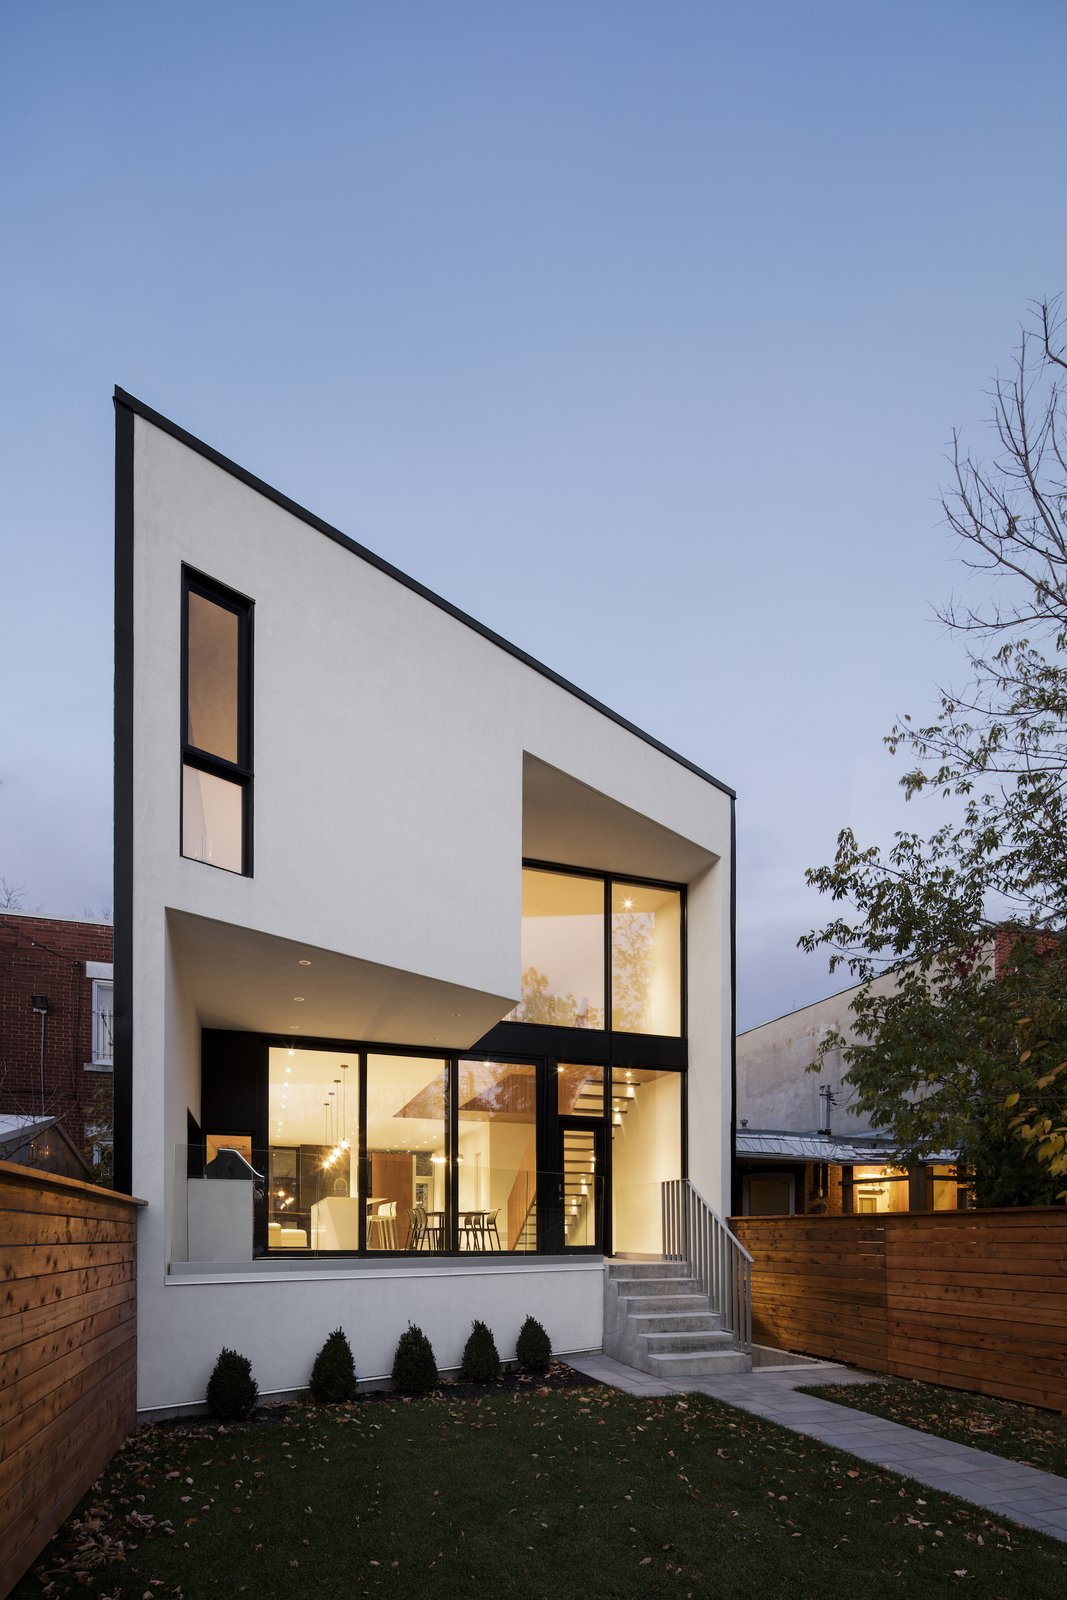 1st Avenue Residence by Leibal